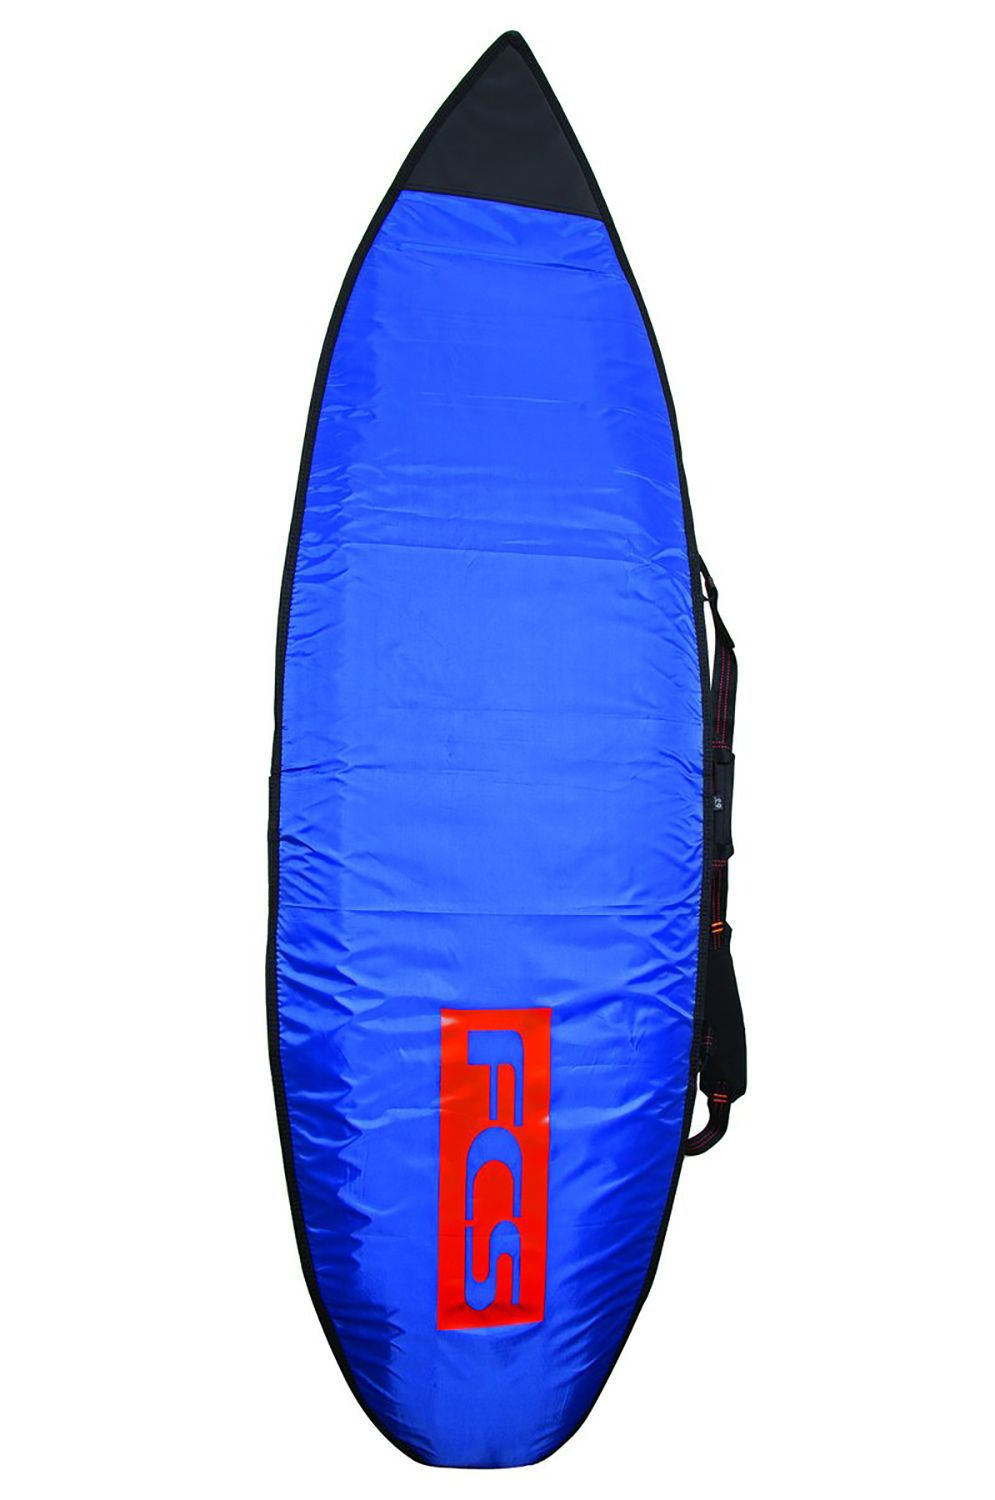 Fcs Boardbag 6'3 CLASSIC FUN BOARD Steel Blue/White